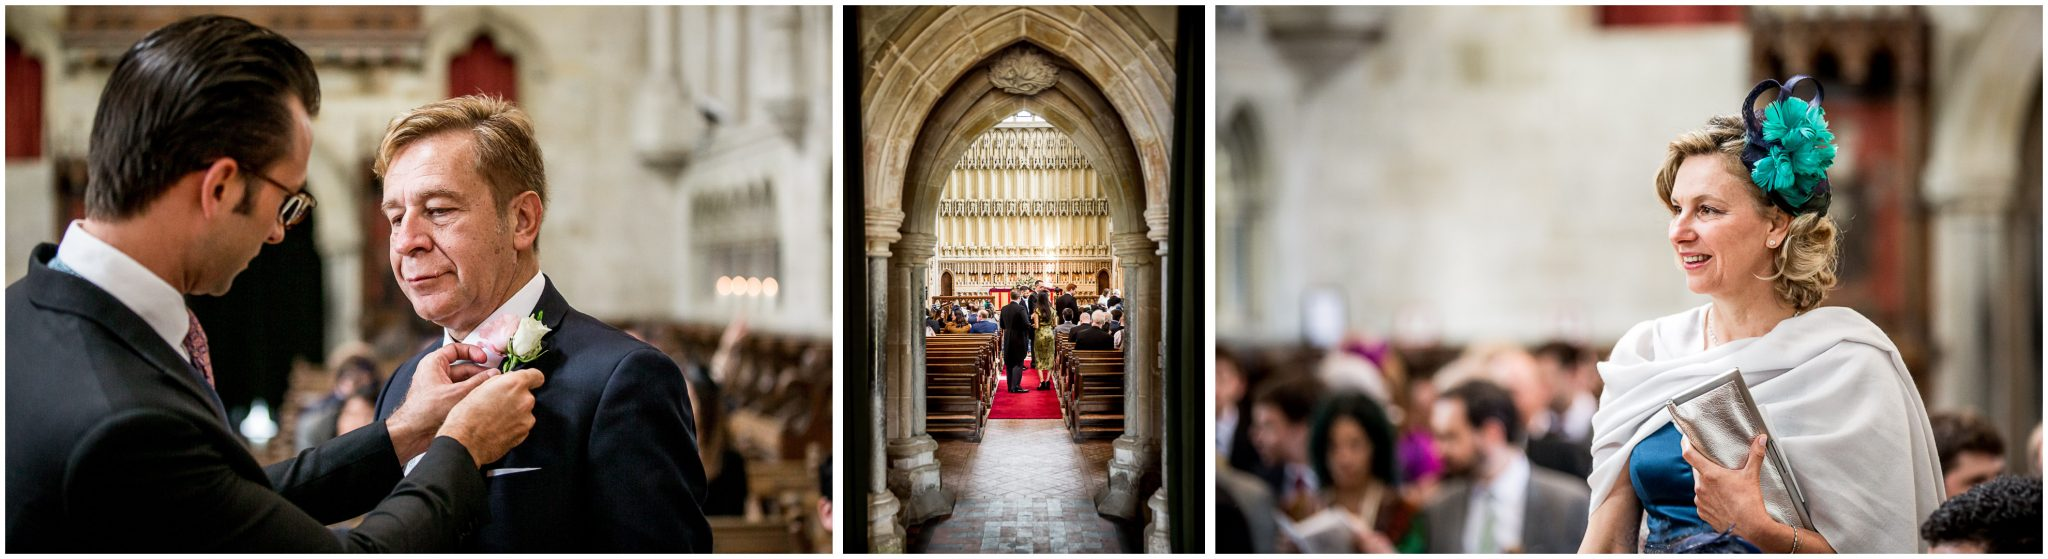 Guests arrive at Milton Abbey for the wedding ceremony